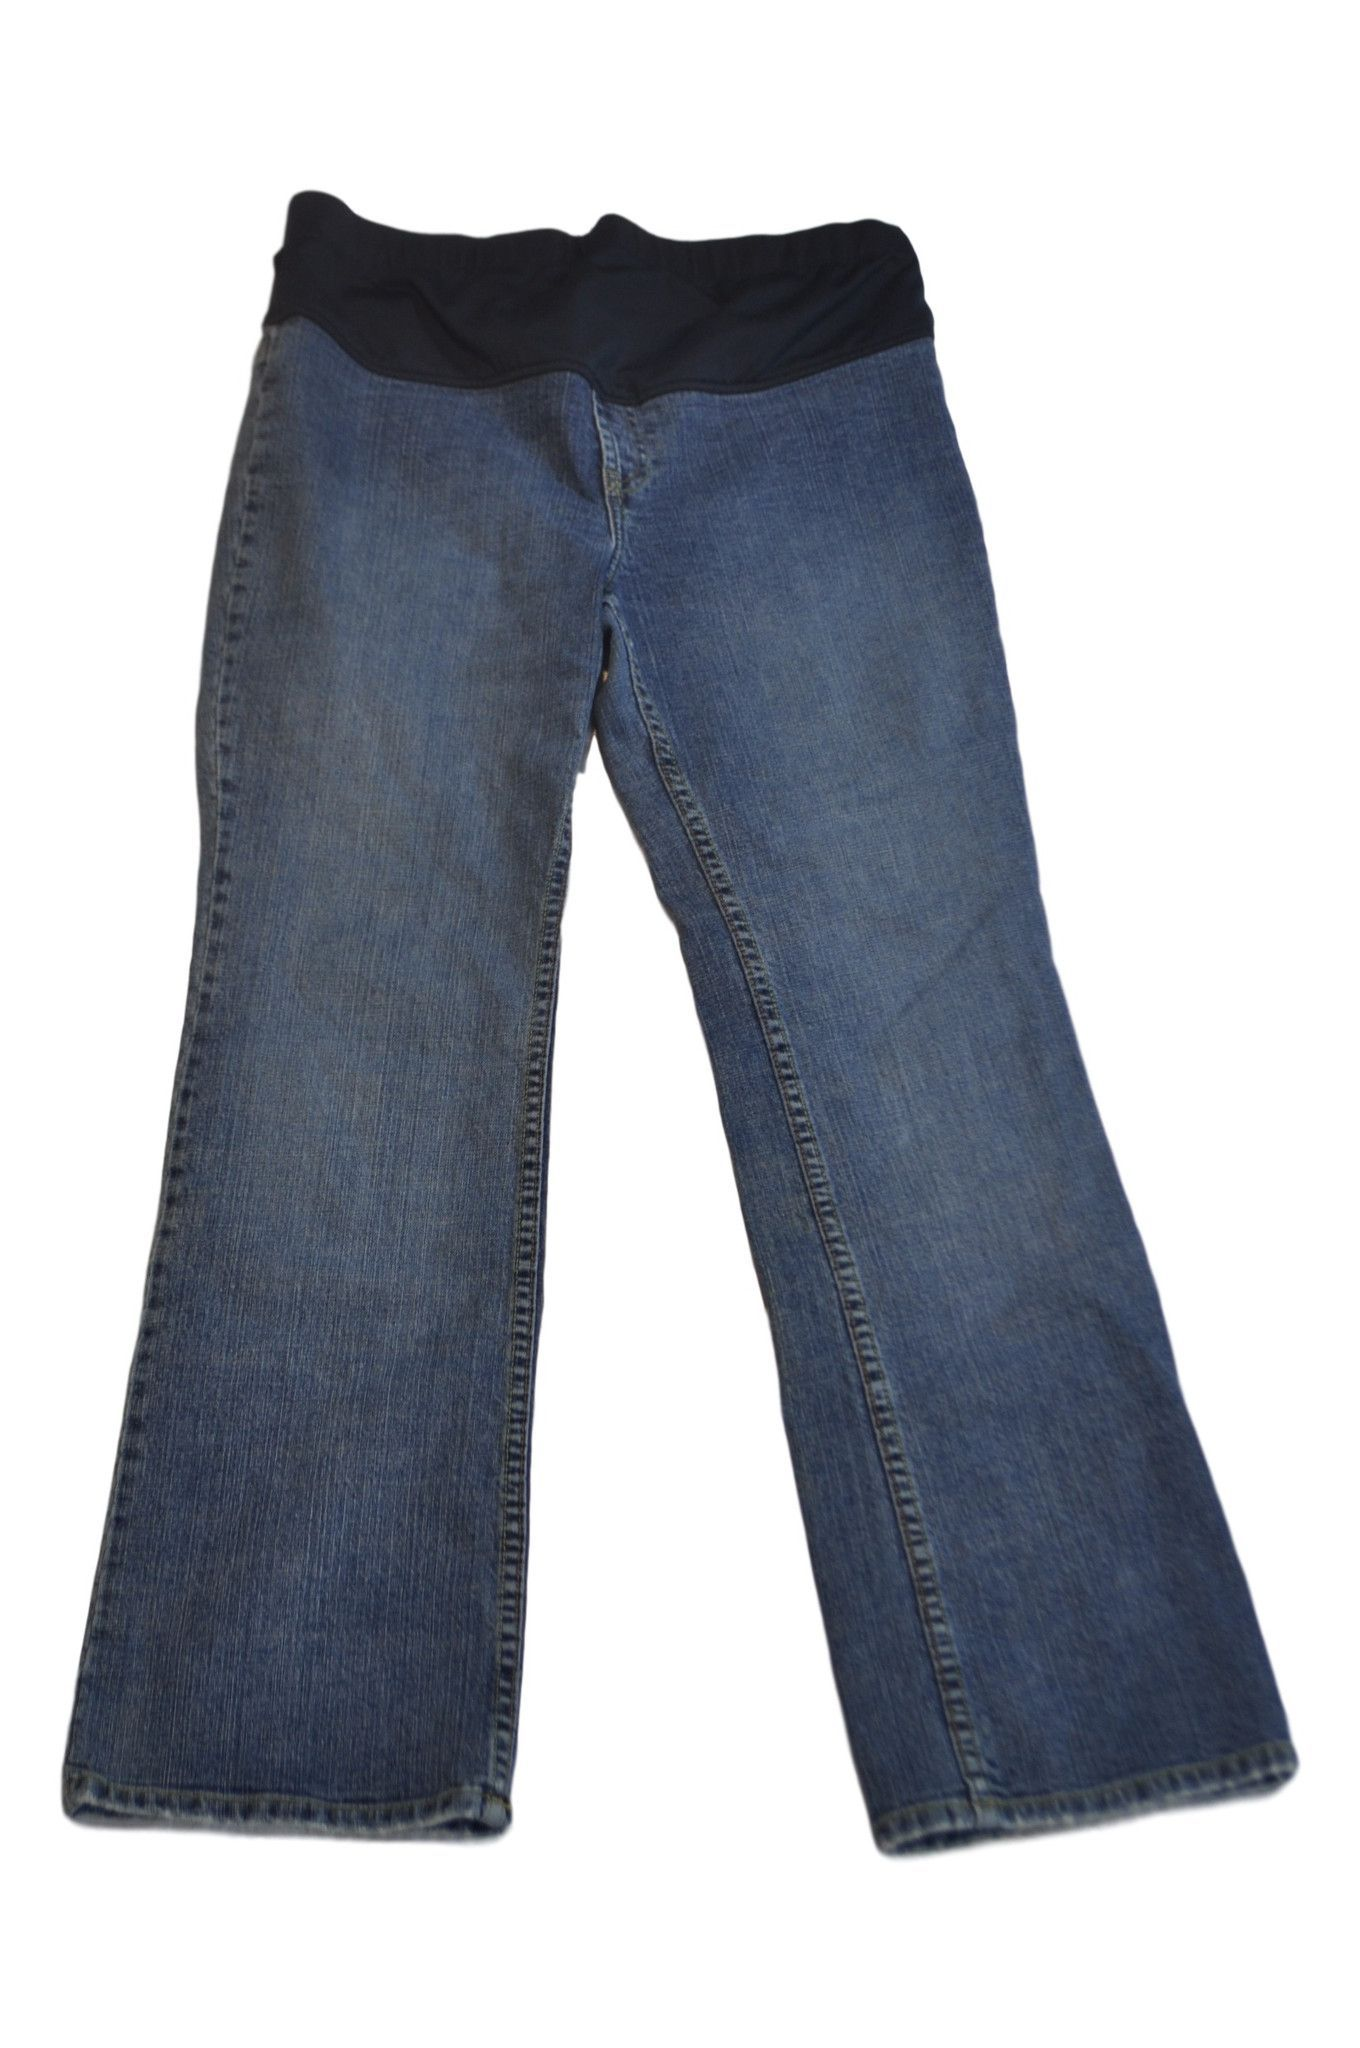 Blue Low Waist Stretch Jeans by Old Navy*